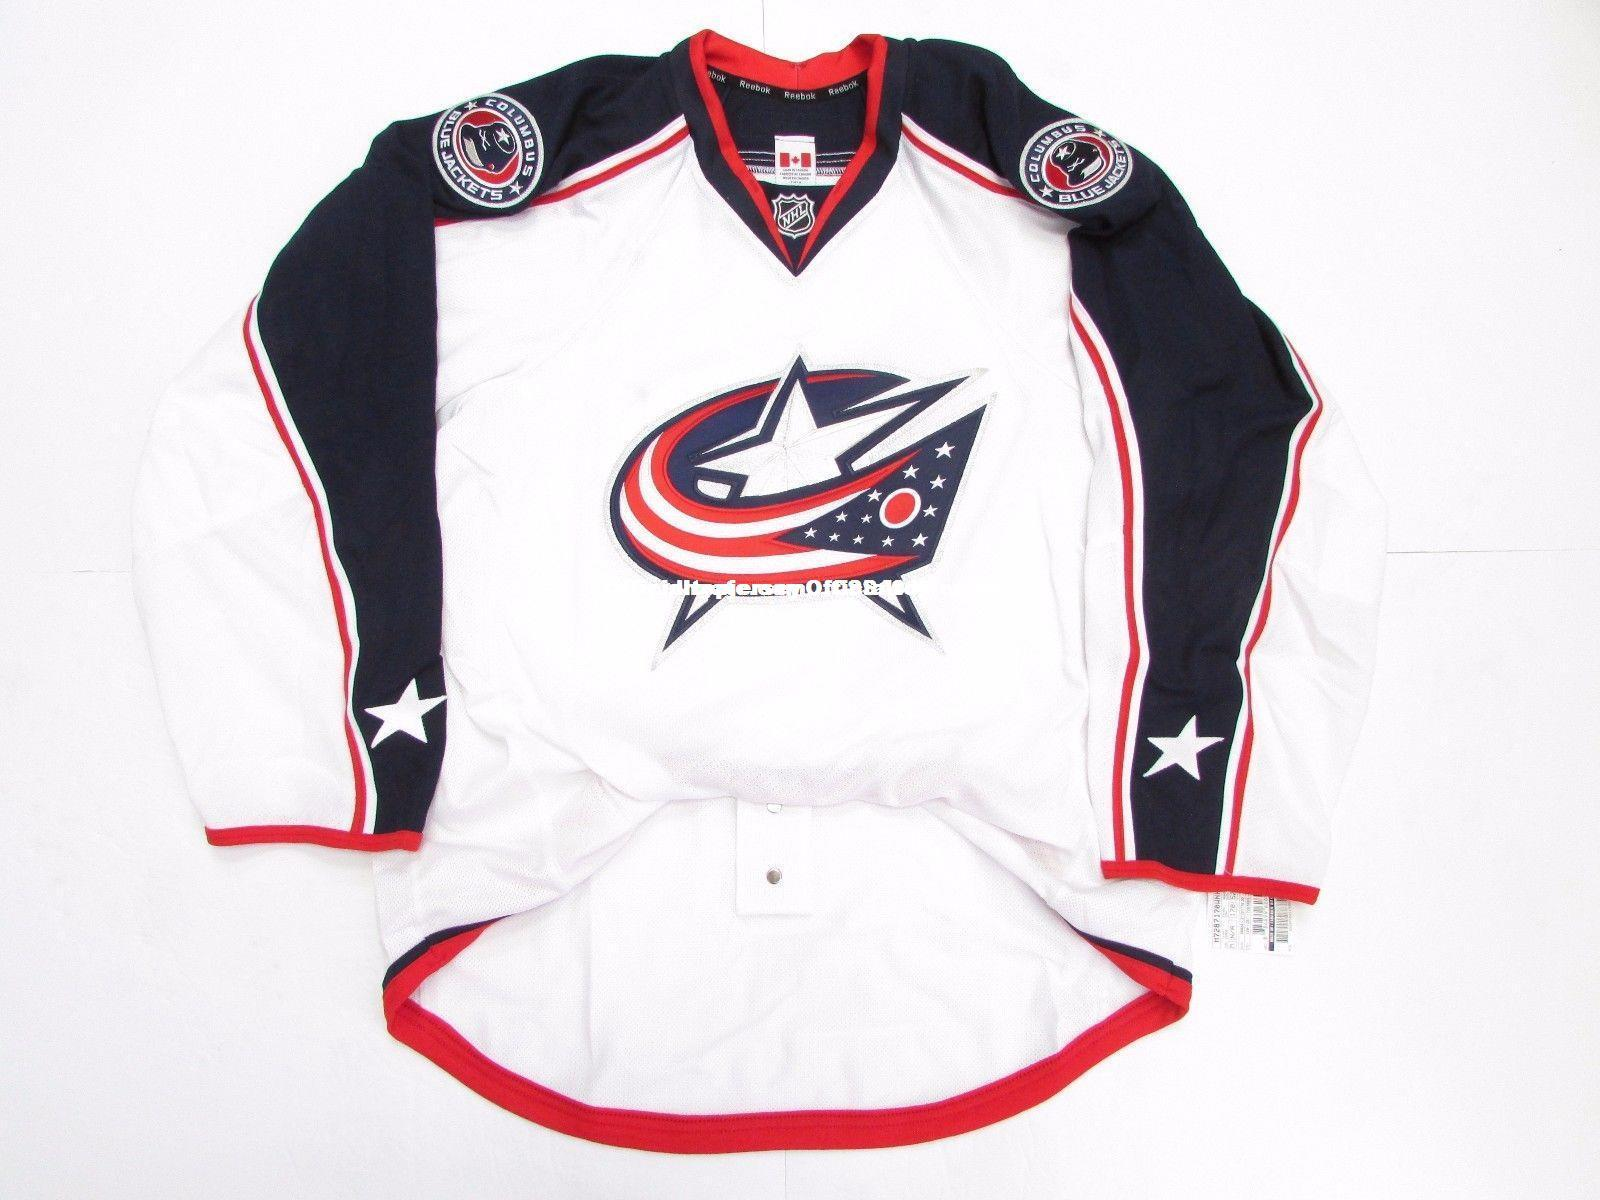 2018 Cheap Custom COLUMBUS BLUE JACKETS AWAY TEAM ISSUED EDGE 2.0 7287  JERSEY Stitch Add Any Number Any Name Mens Hockey Jersey GOALIE CUT 5XL  From ... 48cb1b566